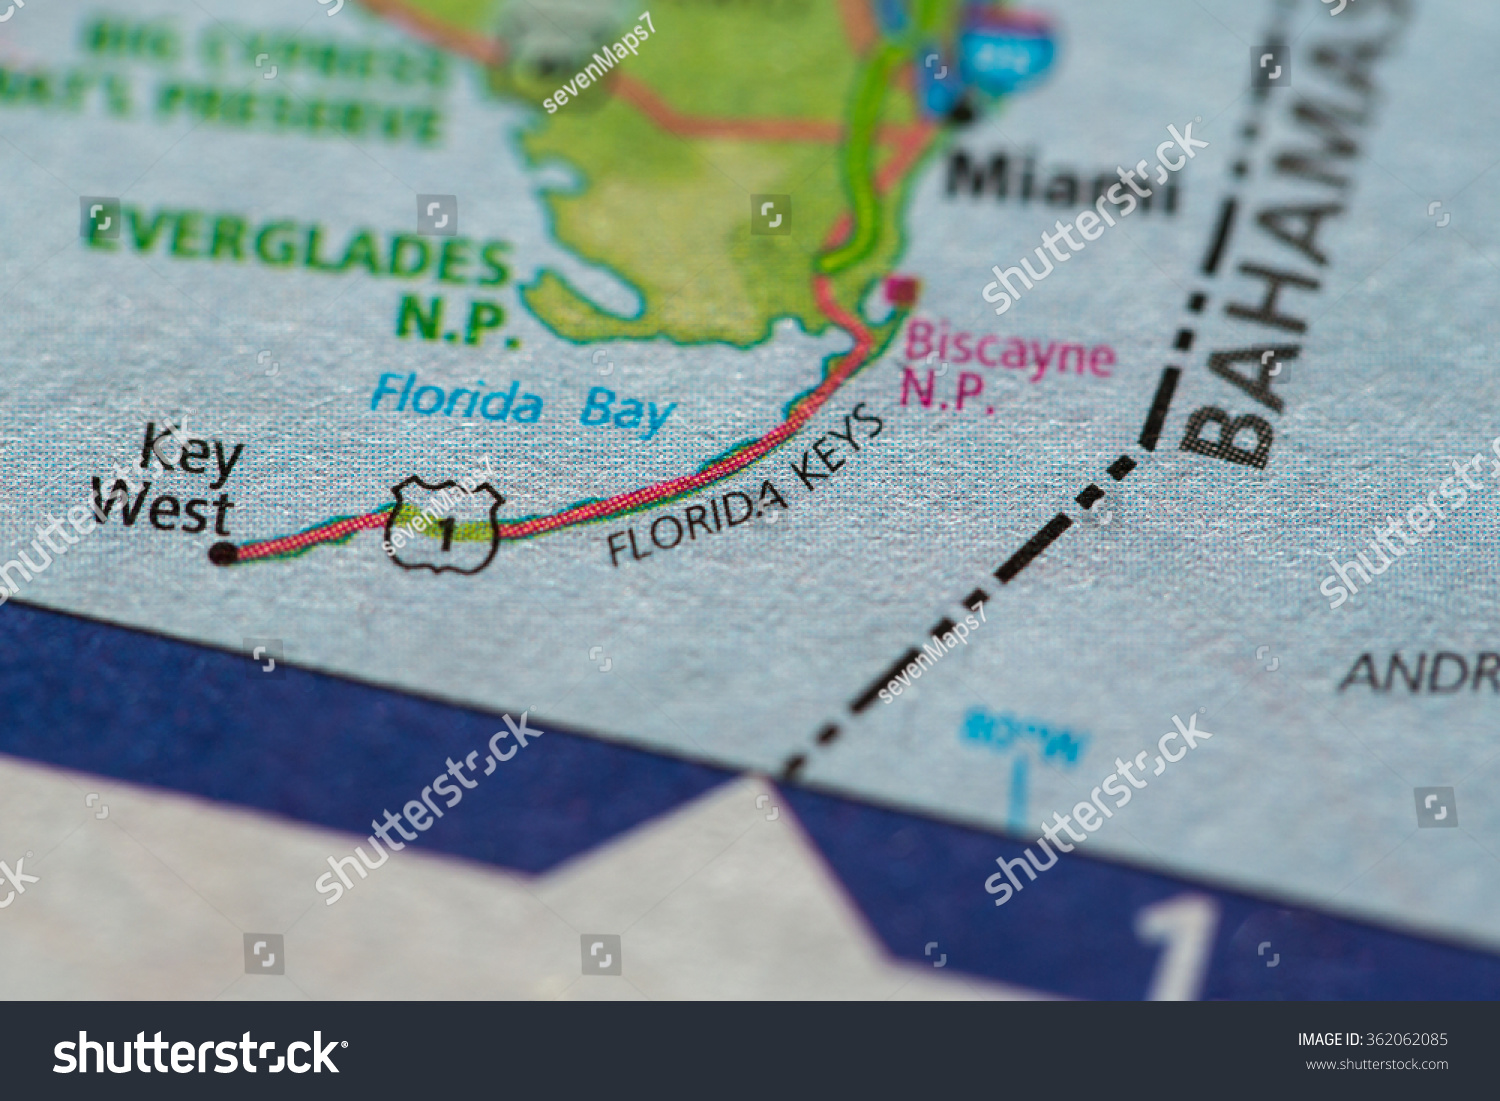 Closeup Florida Keys On Geographical Map Stock Photo (Edit ... on military map of florida, map of us 27 in florida, political state of florida, transportation of florida, full large map of florida, overhead view of florida, physical map landforms in florida, descriptive map of florida, satellite map of florida, 3 regions map of florida, geo of florida, physical geography of florida, geological map of florida, flag of florida, temperature map of florida, salt-dough map florida, electoral map of florida, climatic map of florida, flood map of florida, archaeological map of florida,